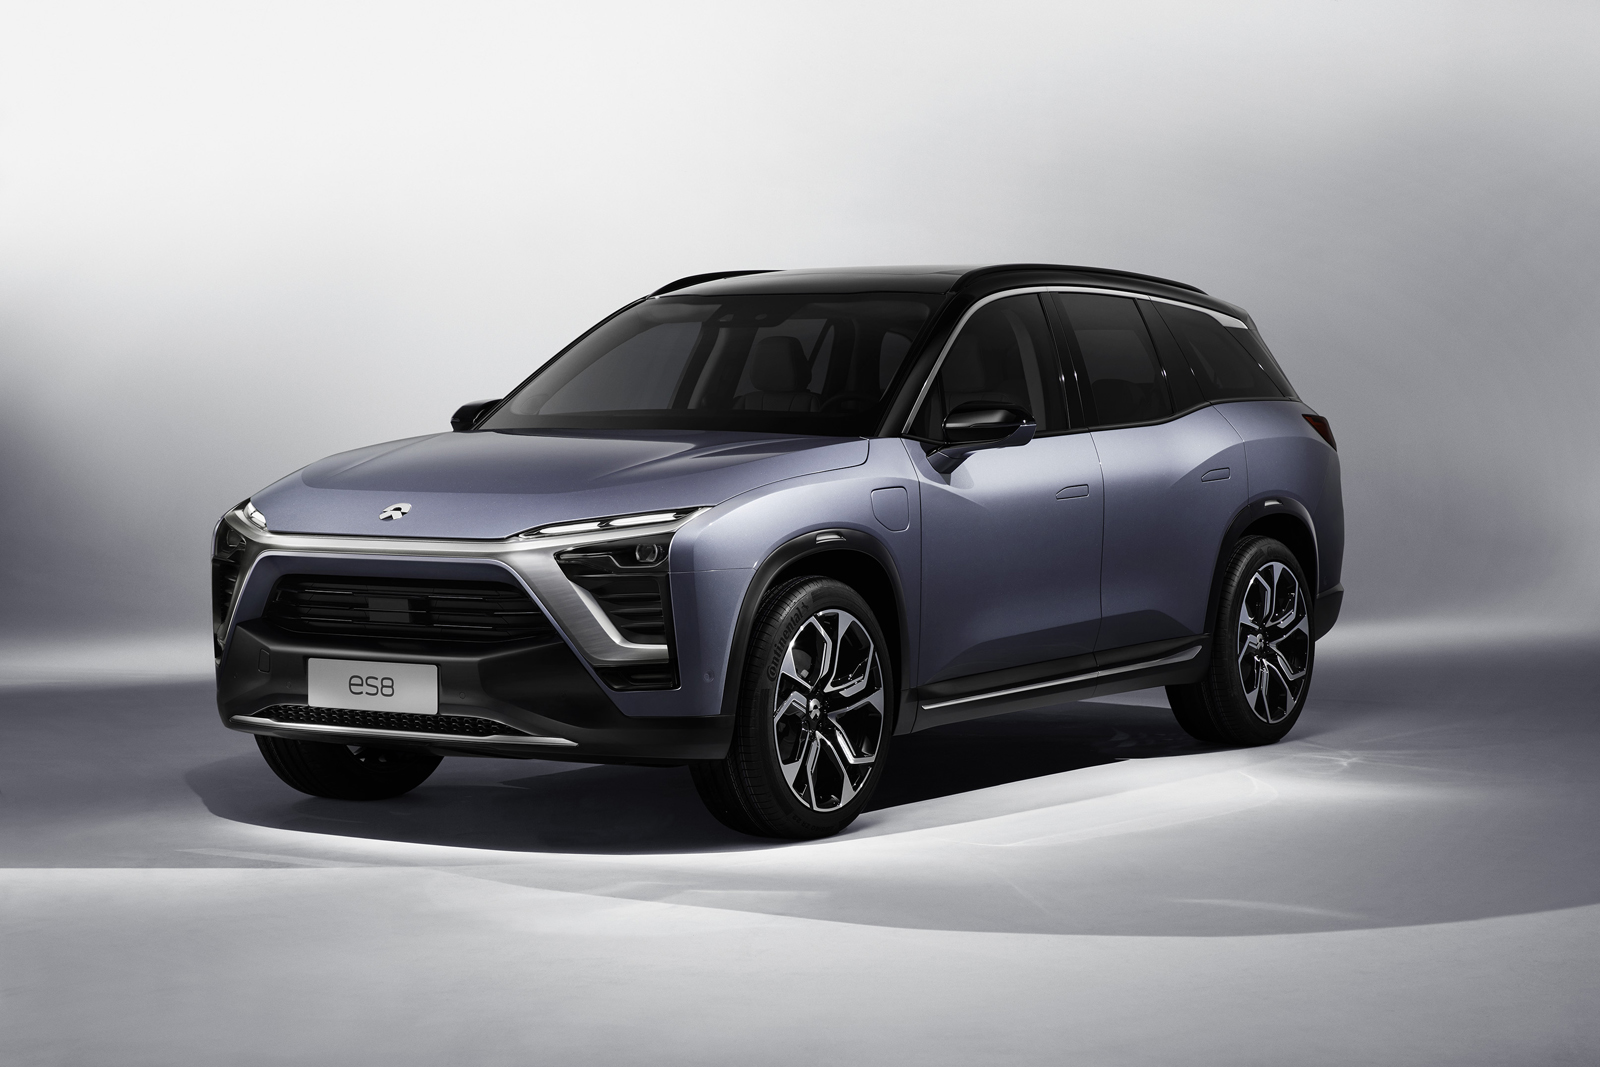 Meet The Nio Es8 A Fully Electric 7 Seat Suv With 220 Miles Of Range